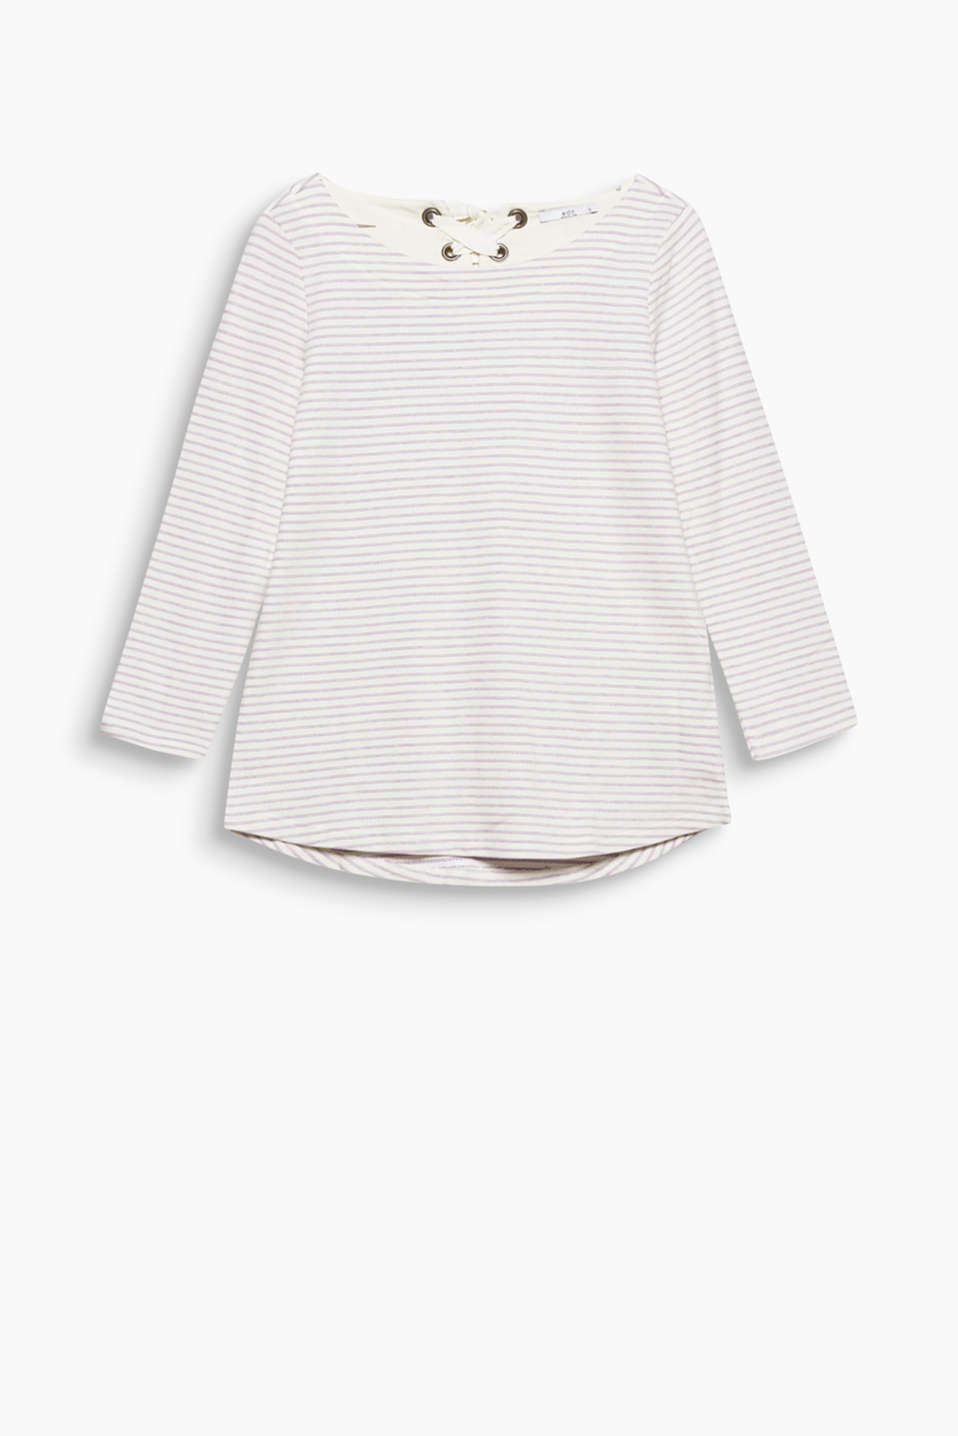 Soft striped top with a laced back neckline and all-over stripes